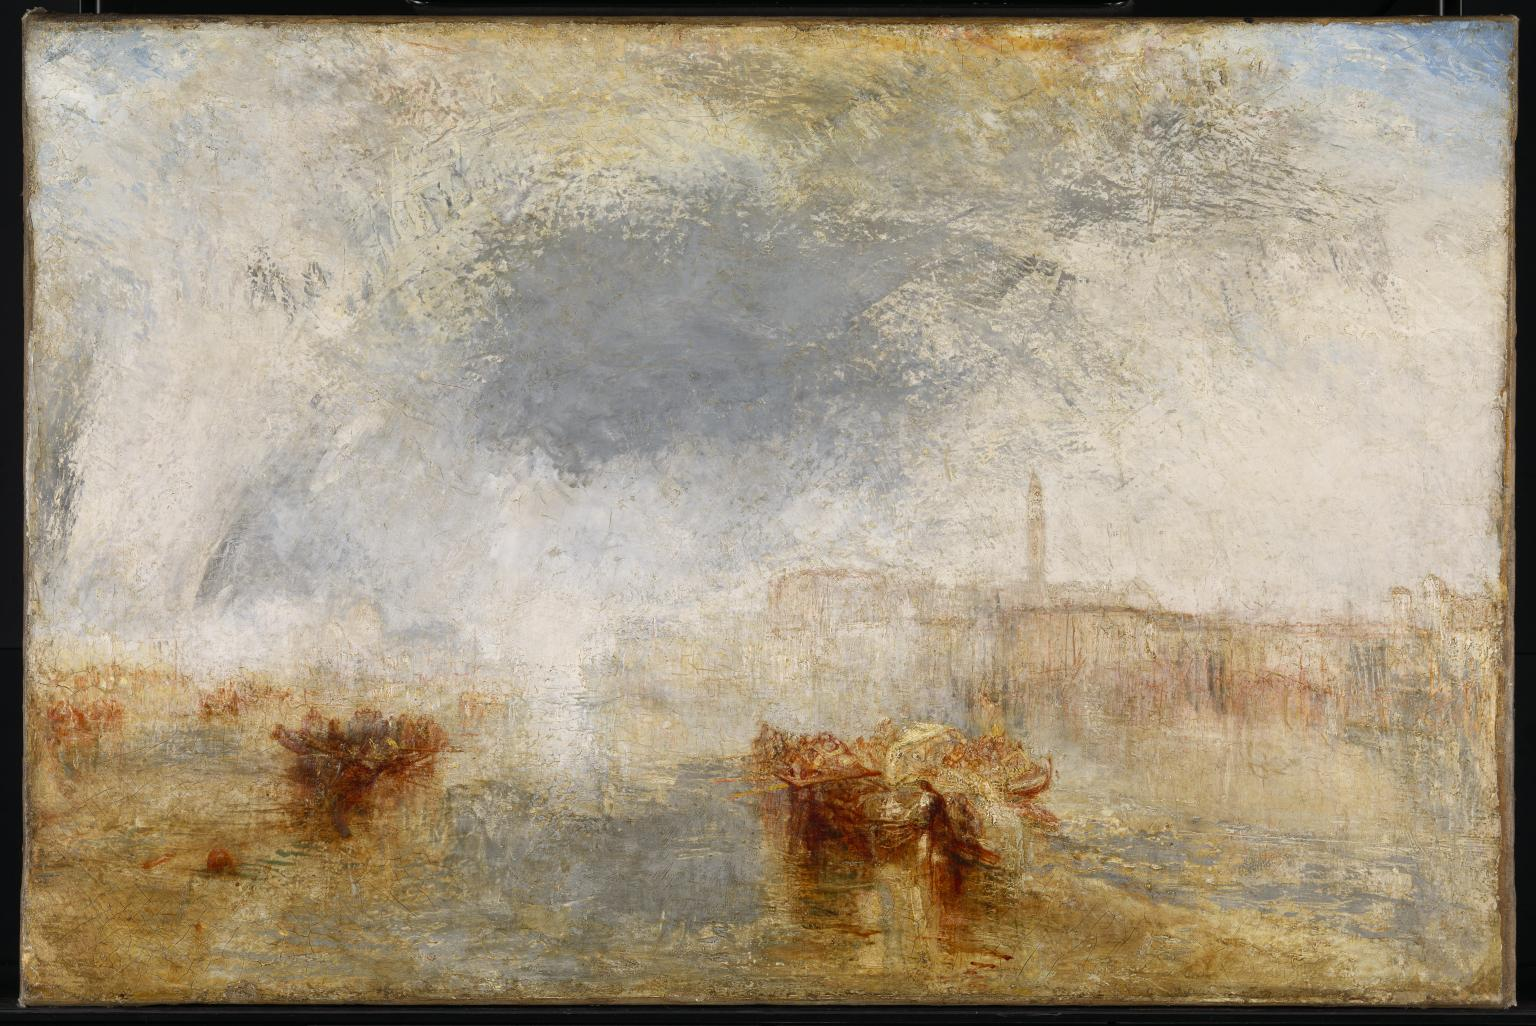 Venice - Noon exhibited 1845 by Joseph Mallord William Turner 1775-1851